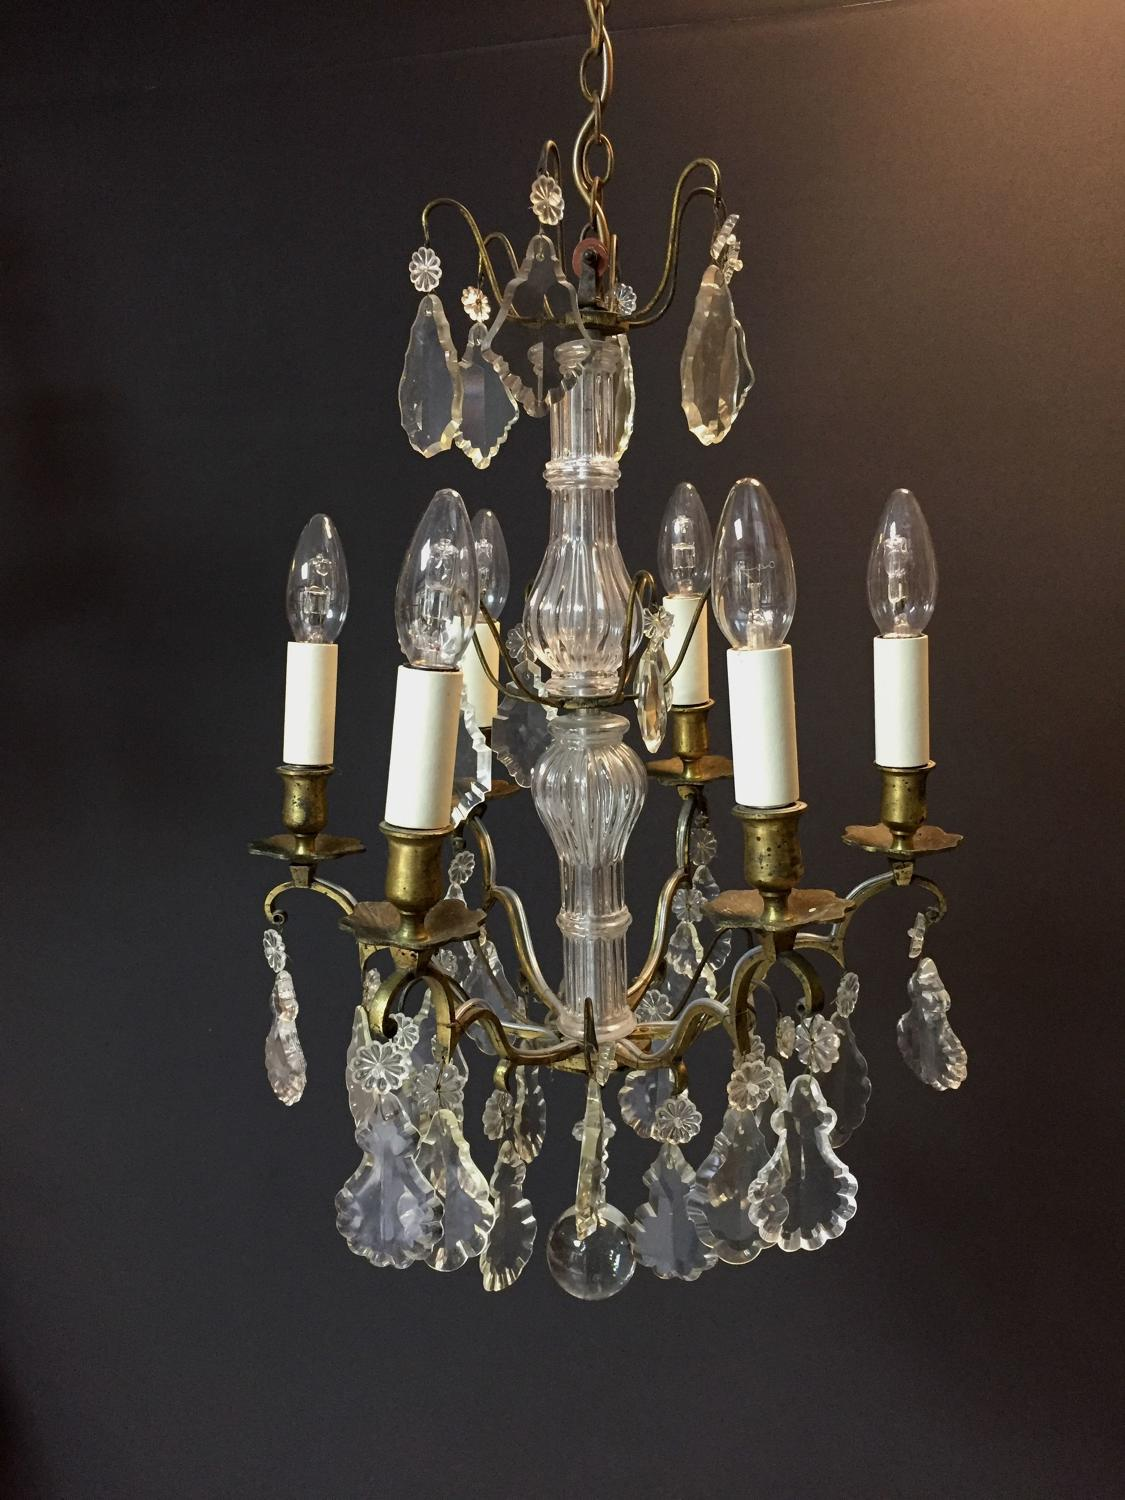 A gilt-brass and cut glass six arm chandelier